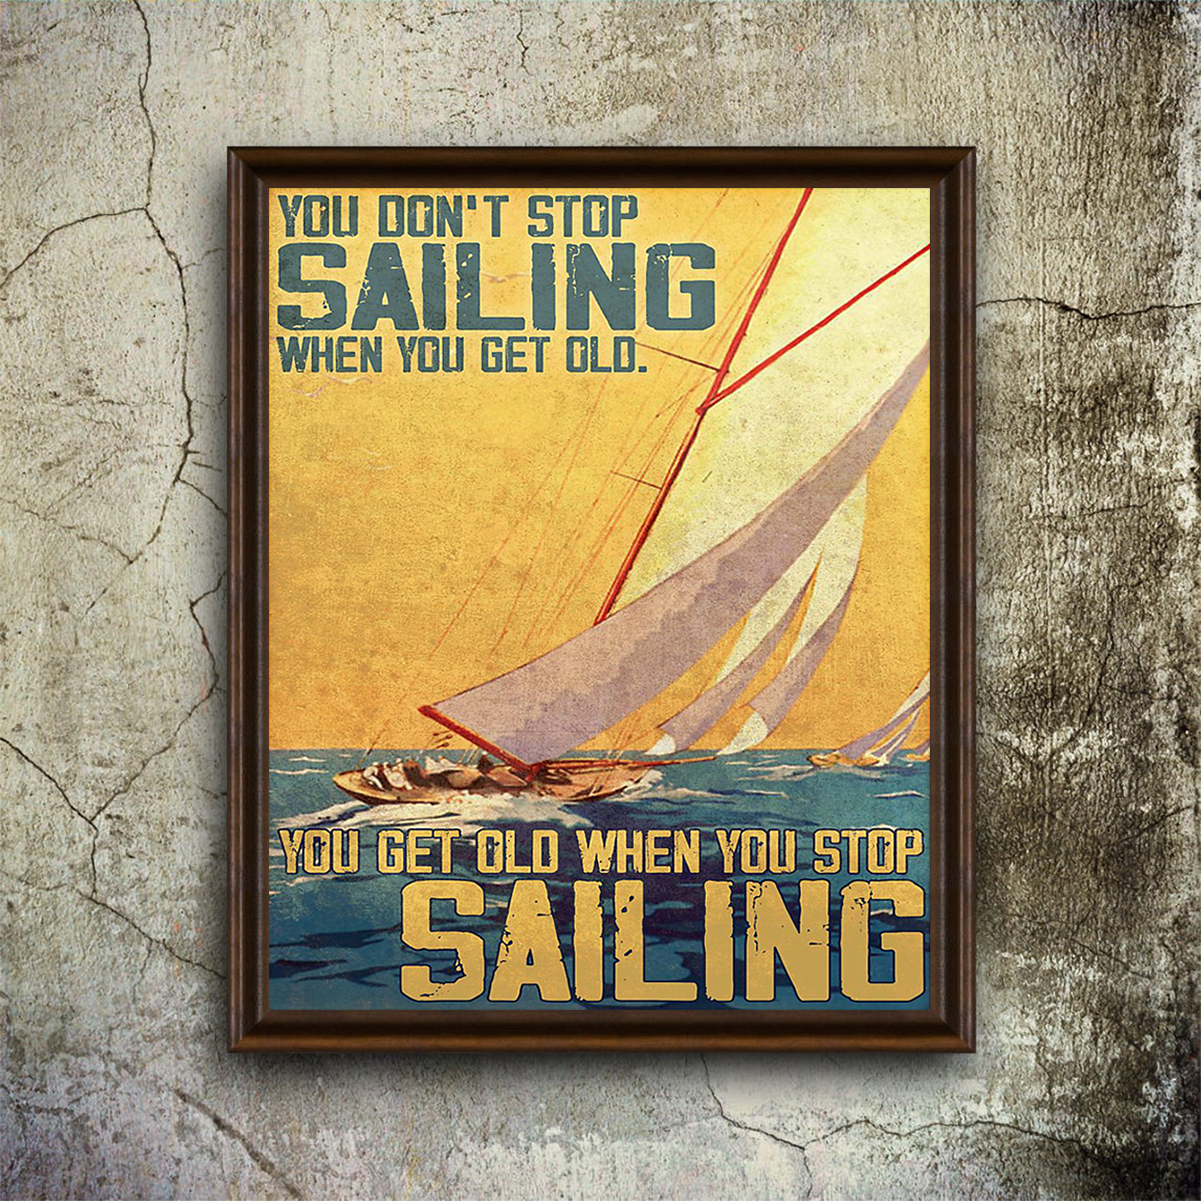 You don't stop sailing when you get old you get old when you stop sailing poster A1